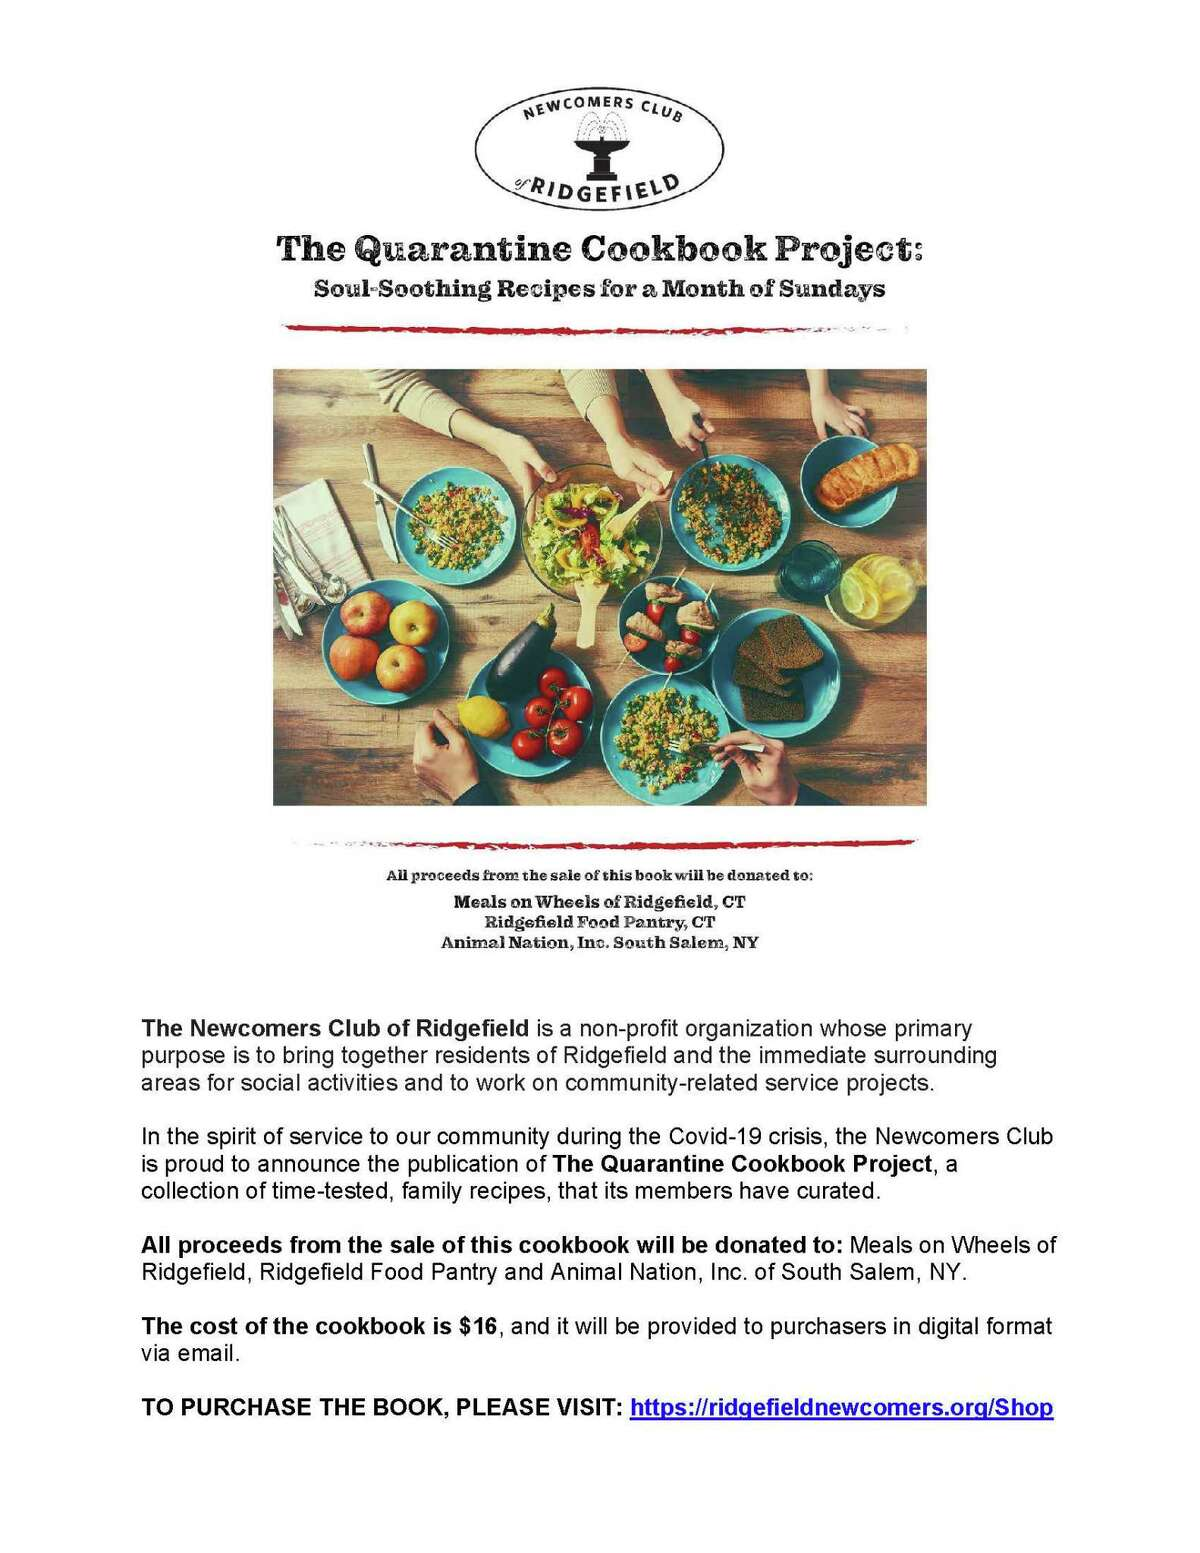 The Newcomers Club announces the publication of The Quarantine Cookbook Project, a collection of time-tested, family recipes, that its members have curated.